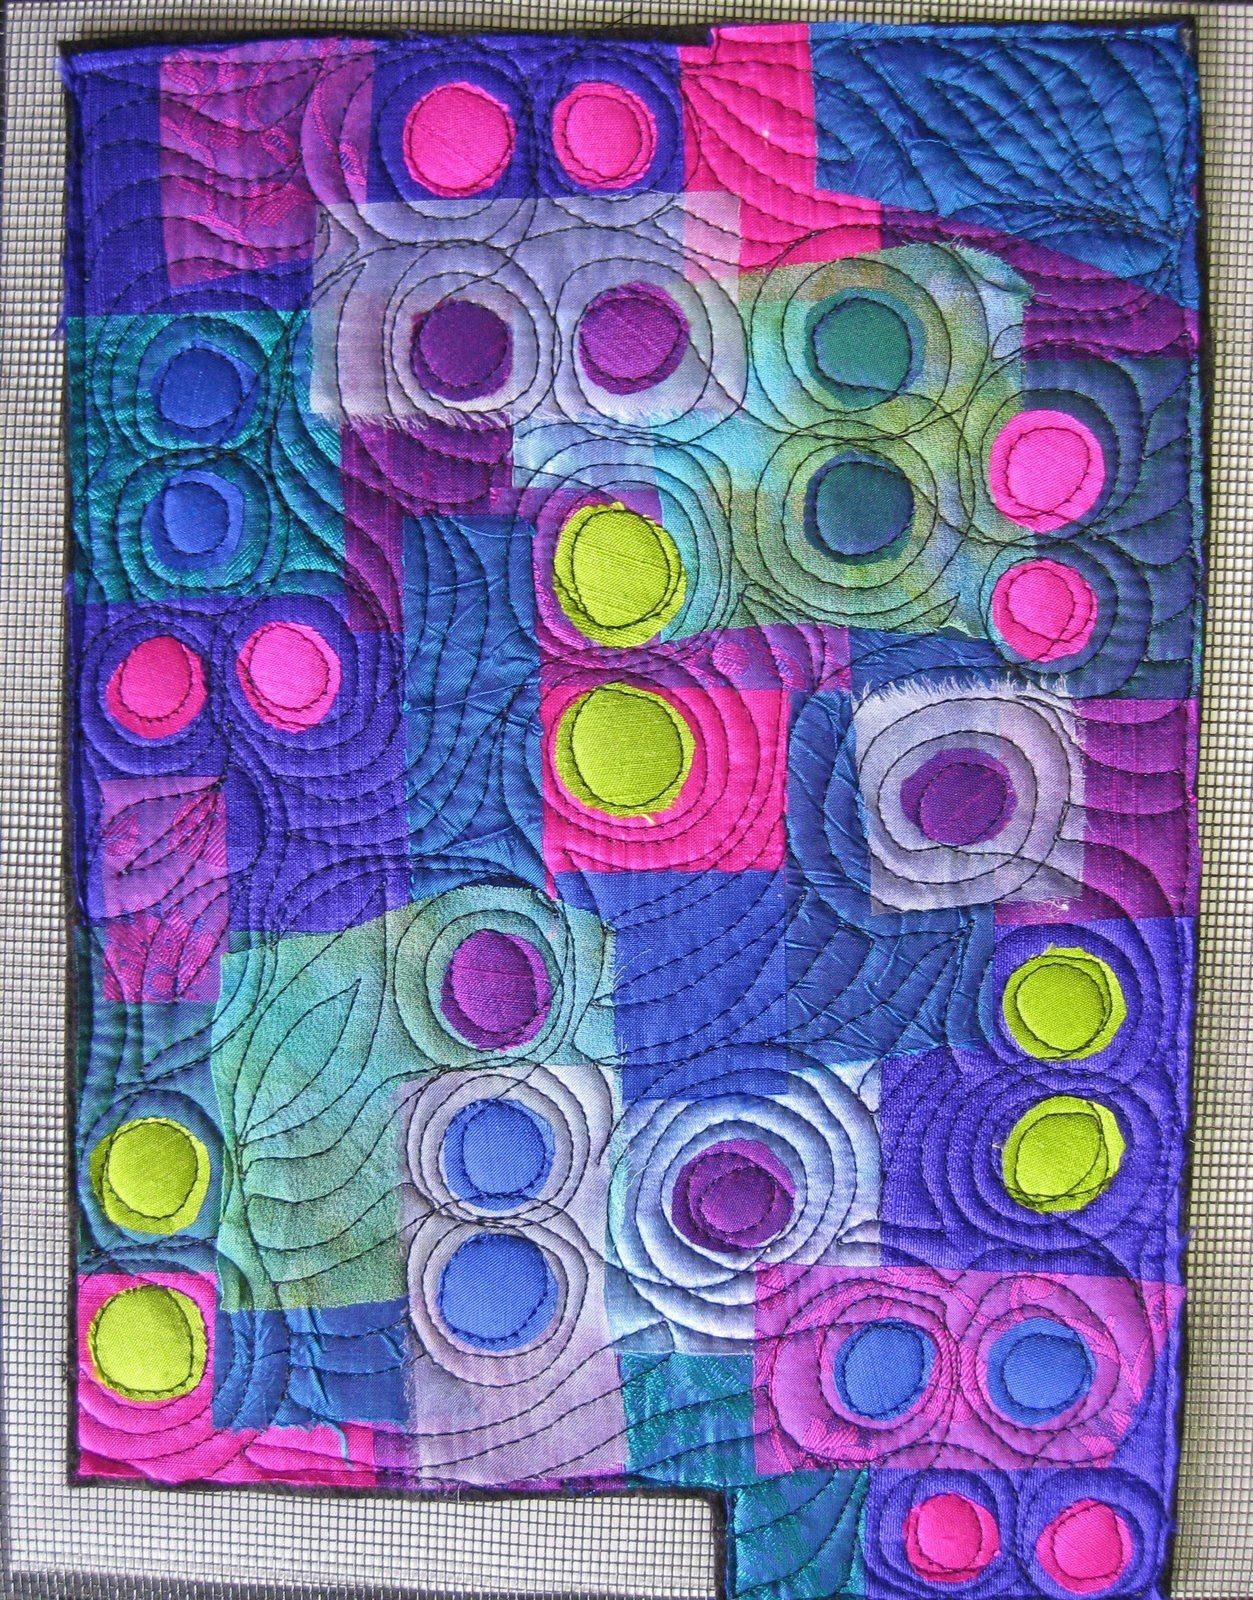 8x10 vibrant silk art quilts